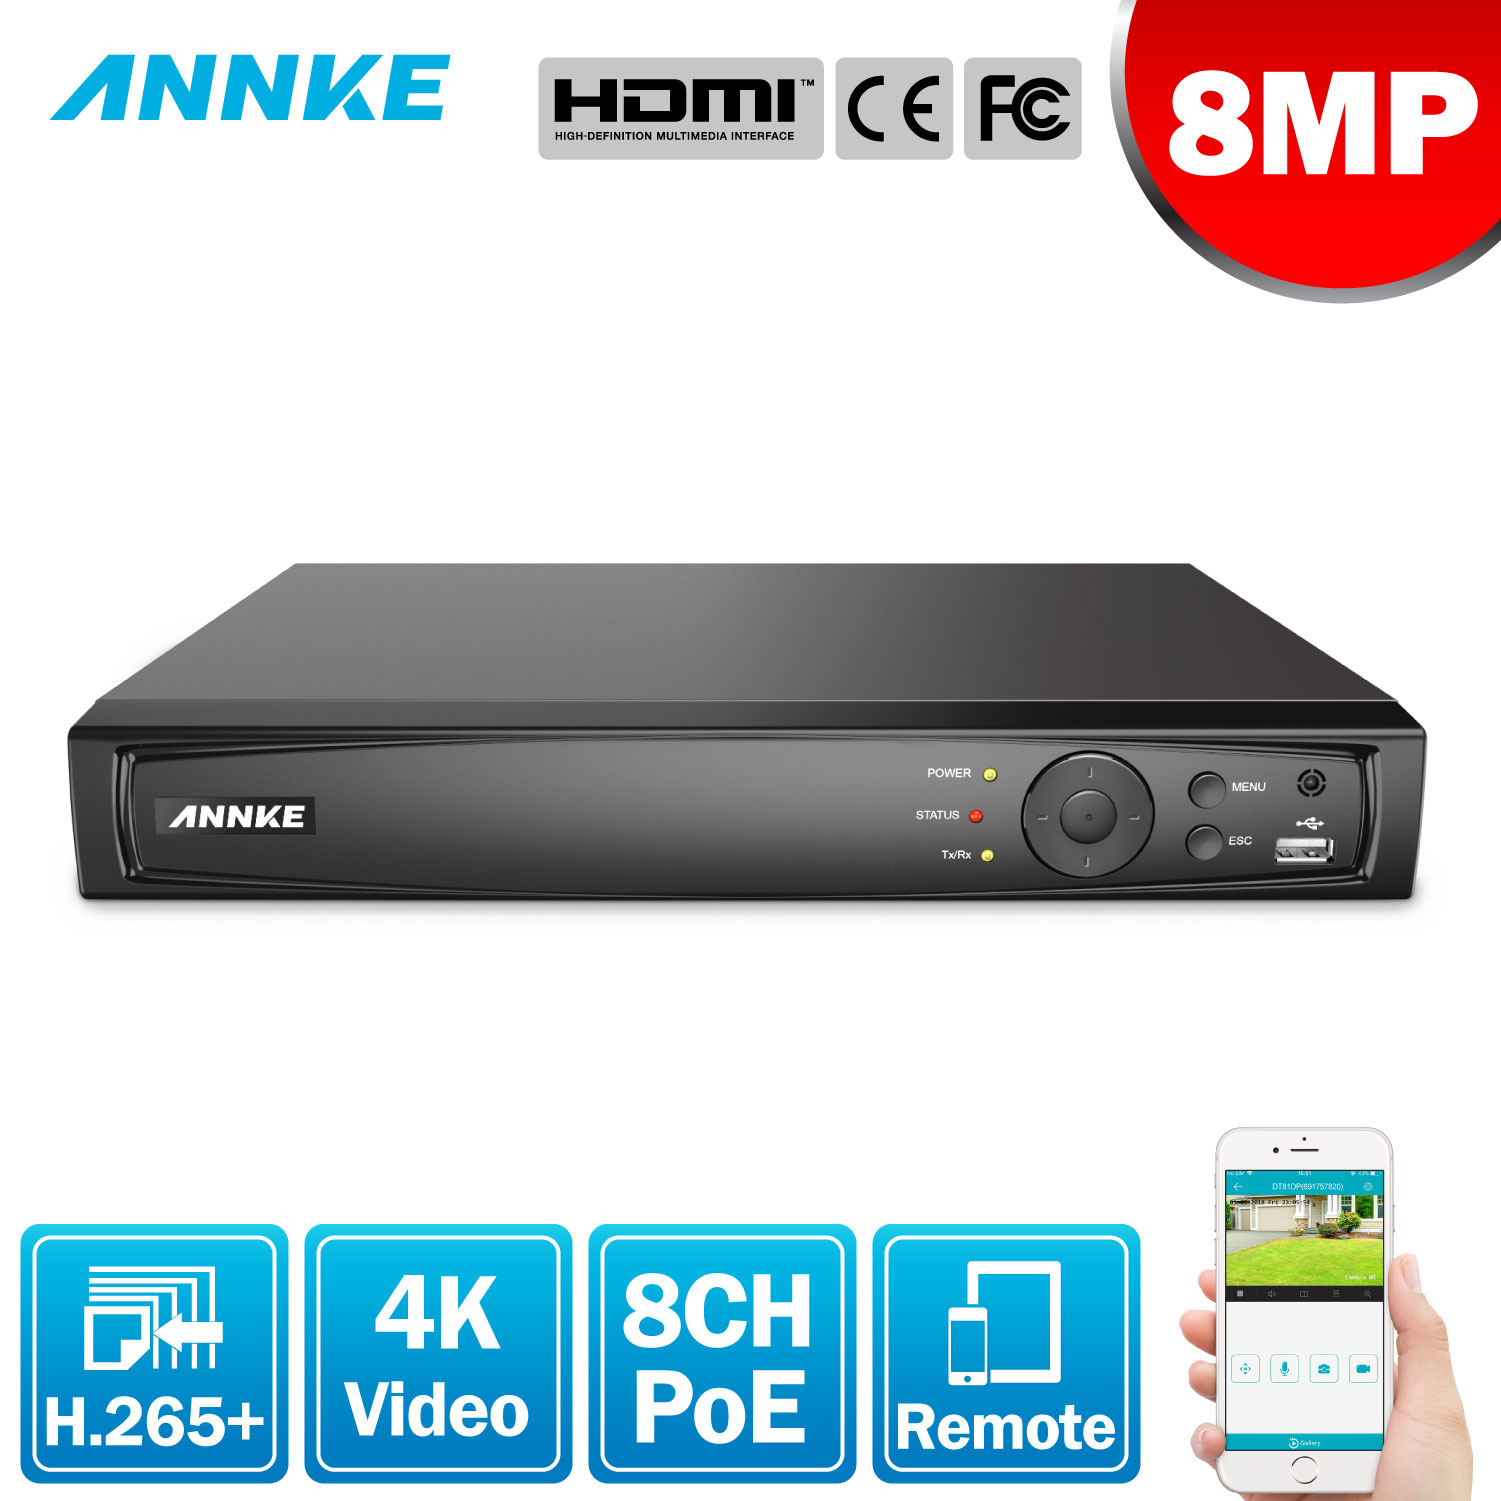 ANNKE 8MP 8CH POE Video Recorder 4K H.265 NVR For HD POE 2MP 4MP 5MP 8MP IP POE Camera Home Surveillance Security Motion Detect